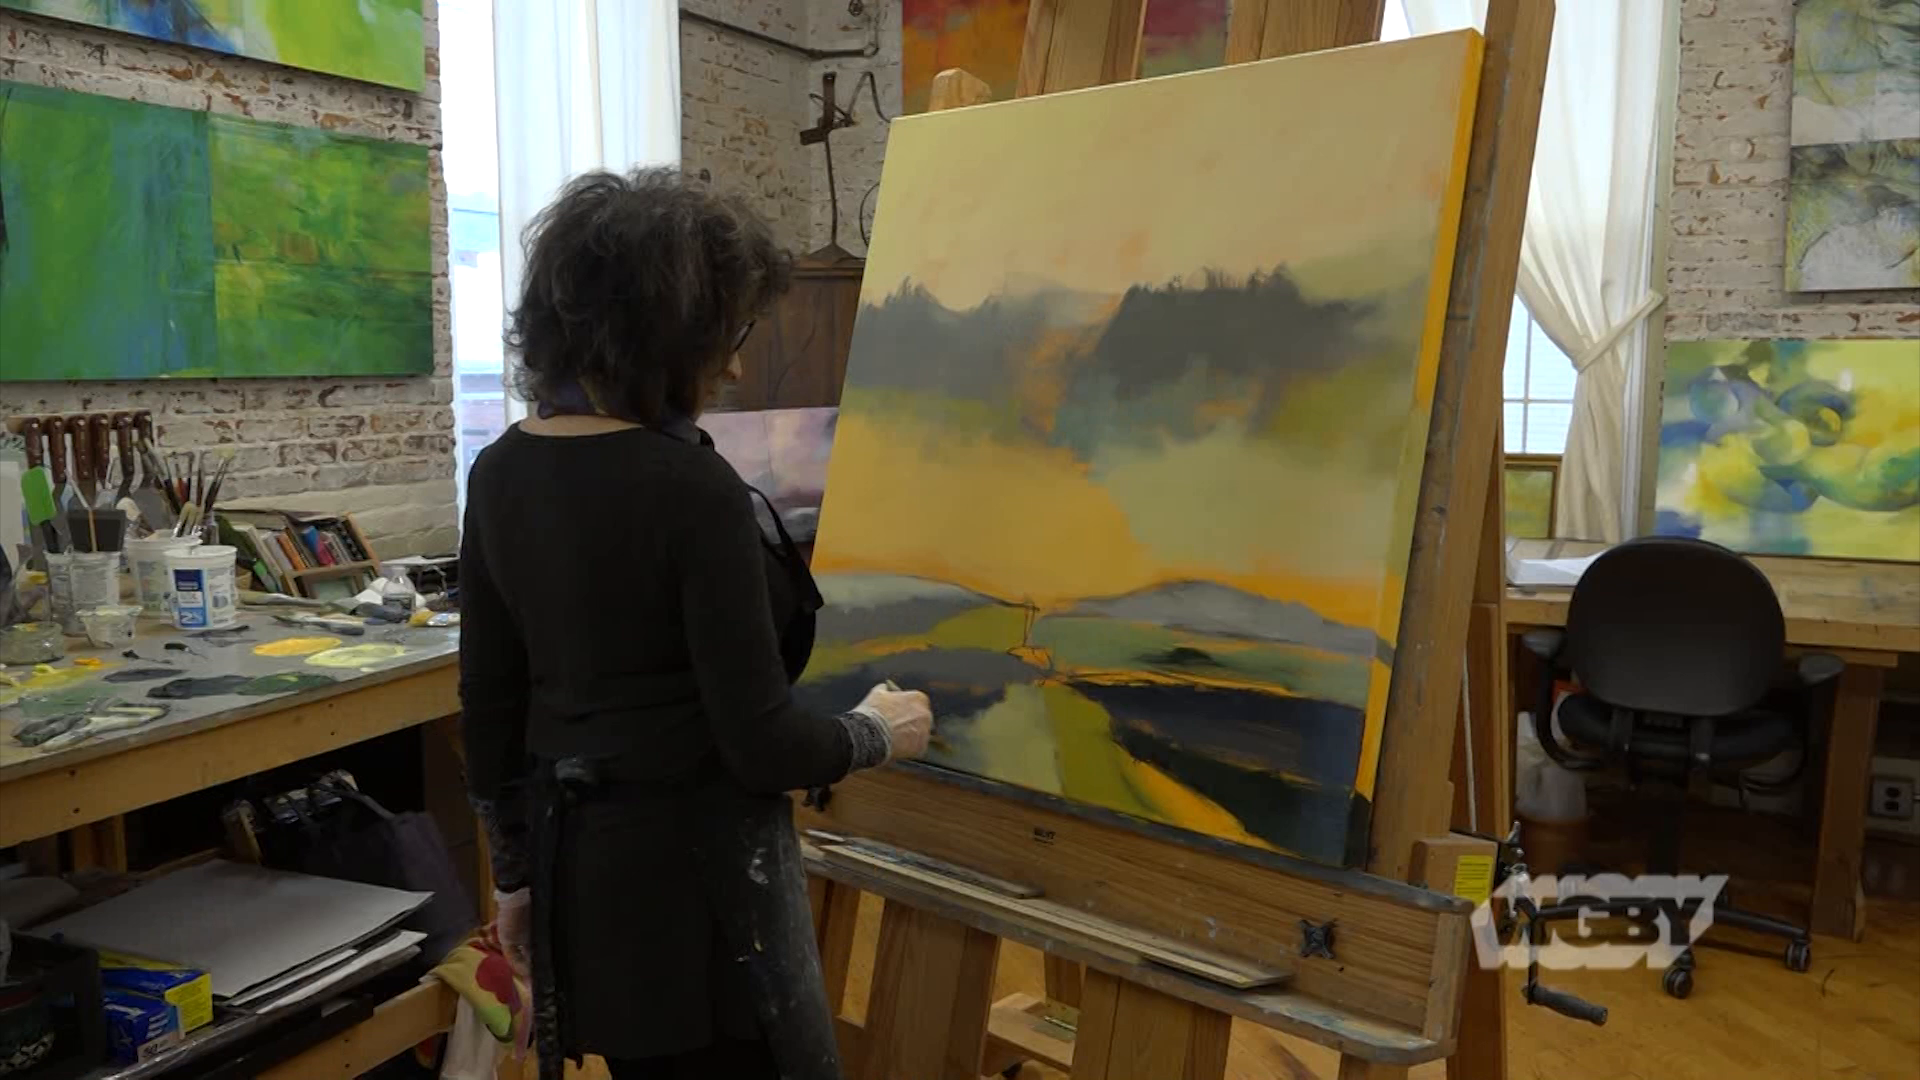 Visit Cottage Street Studios in Easthampton for a closer-look at the dreamy, large-scale landscape paintings crafted by artist Laura Radwell.